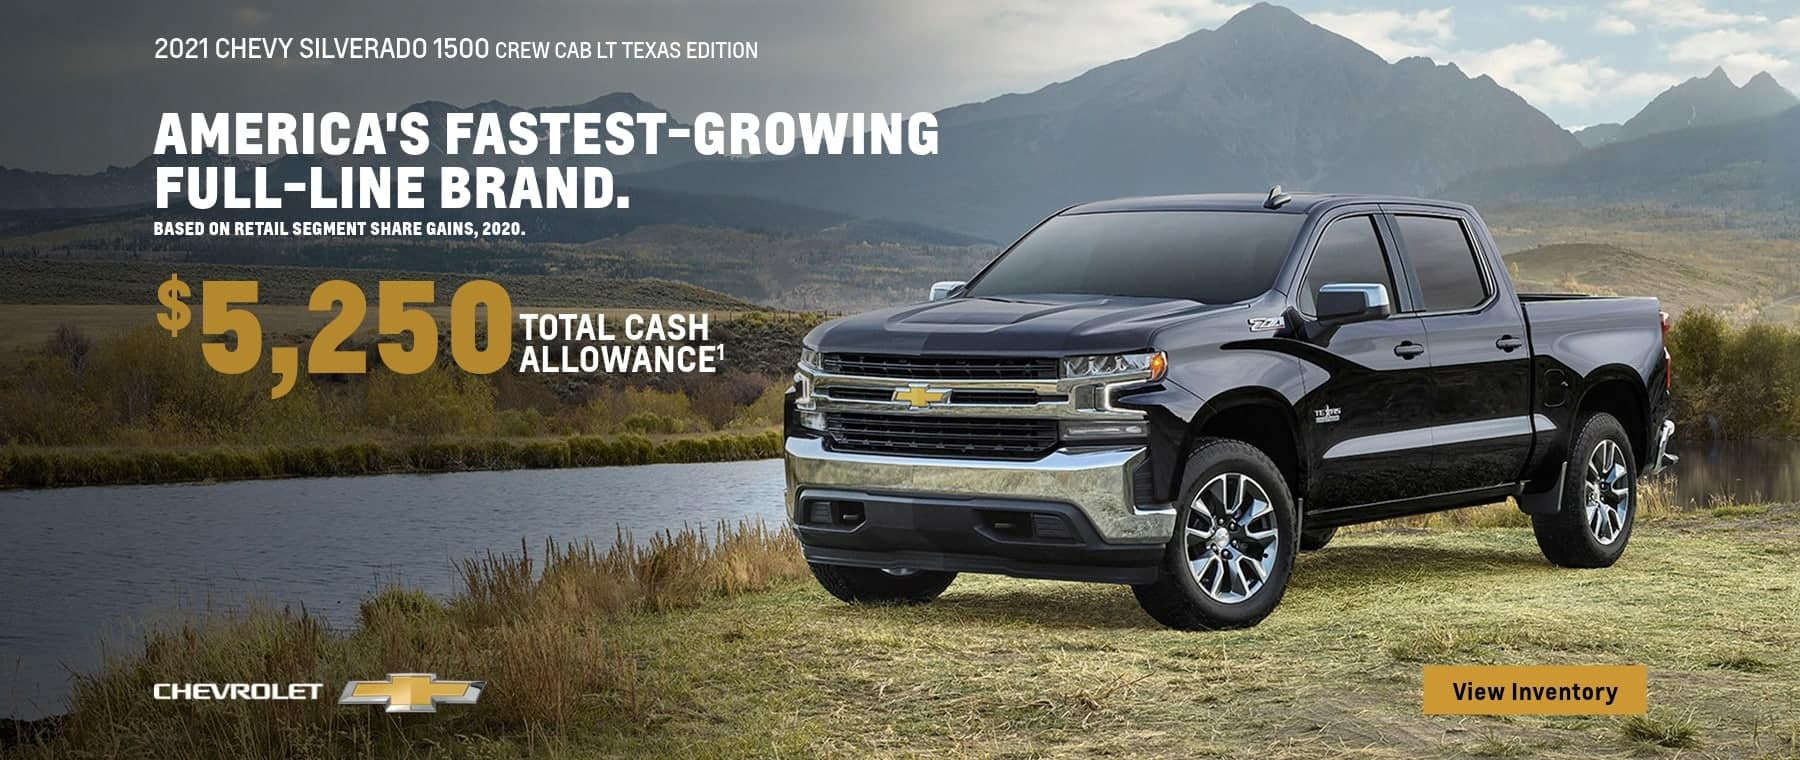 2021 Silverado 1500 Crew Cab LT Texas Edition $5,250 Cash Allowance